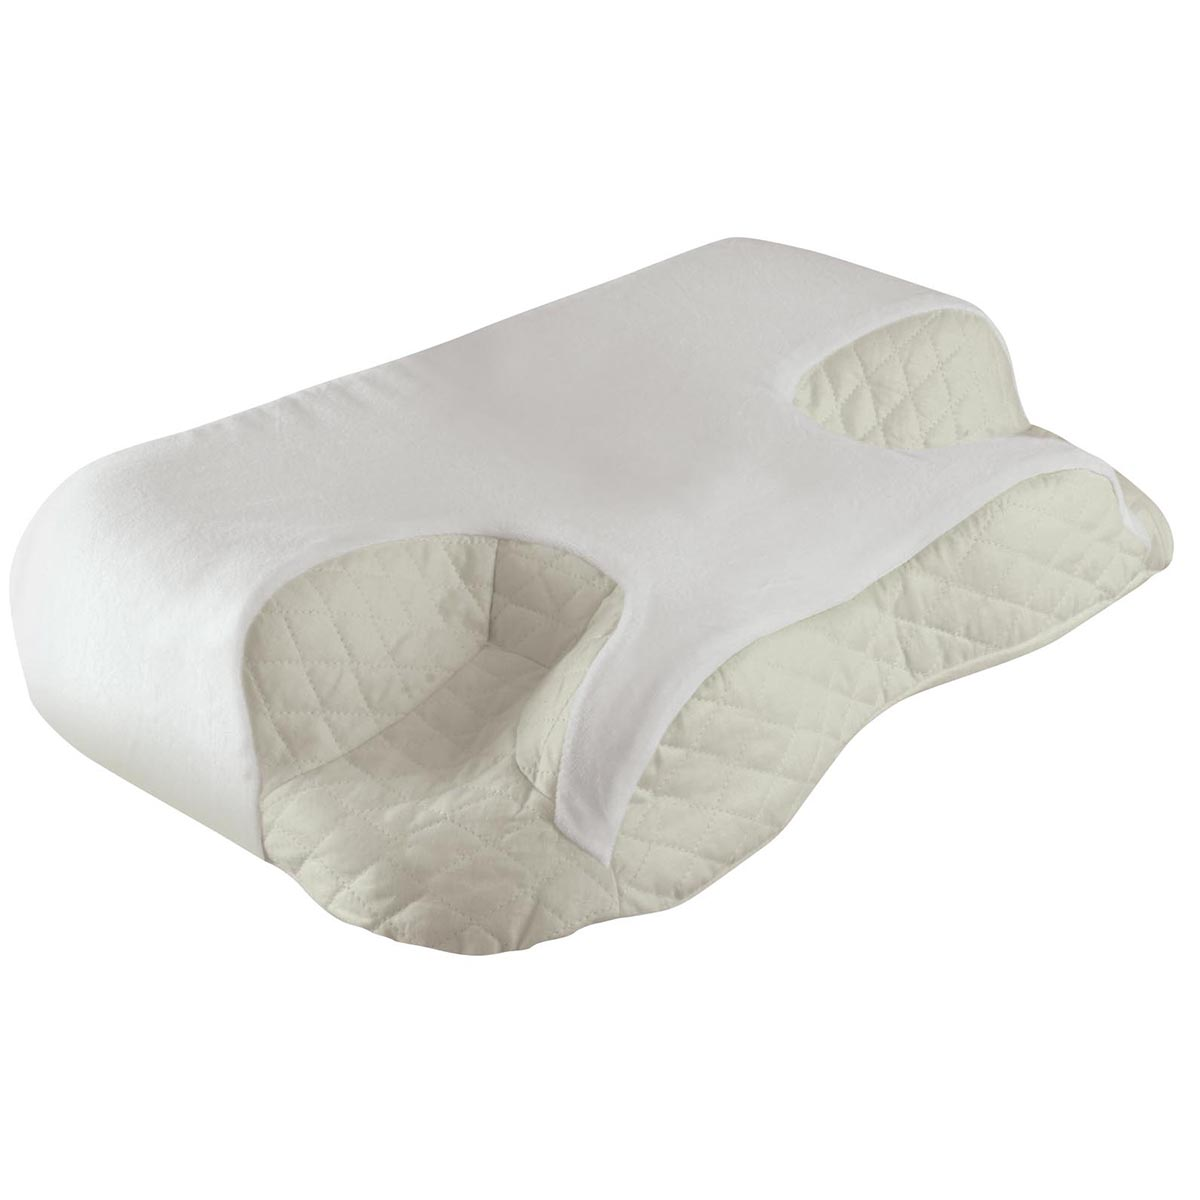 Cpap Sleep Apnea Pillow Circadian Clocks How Rhythms